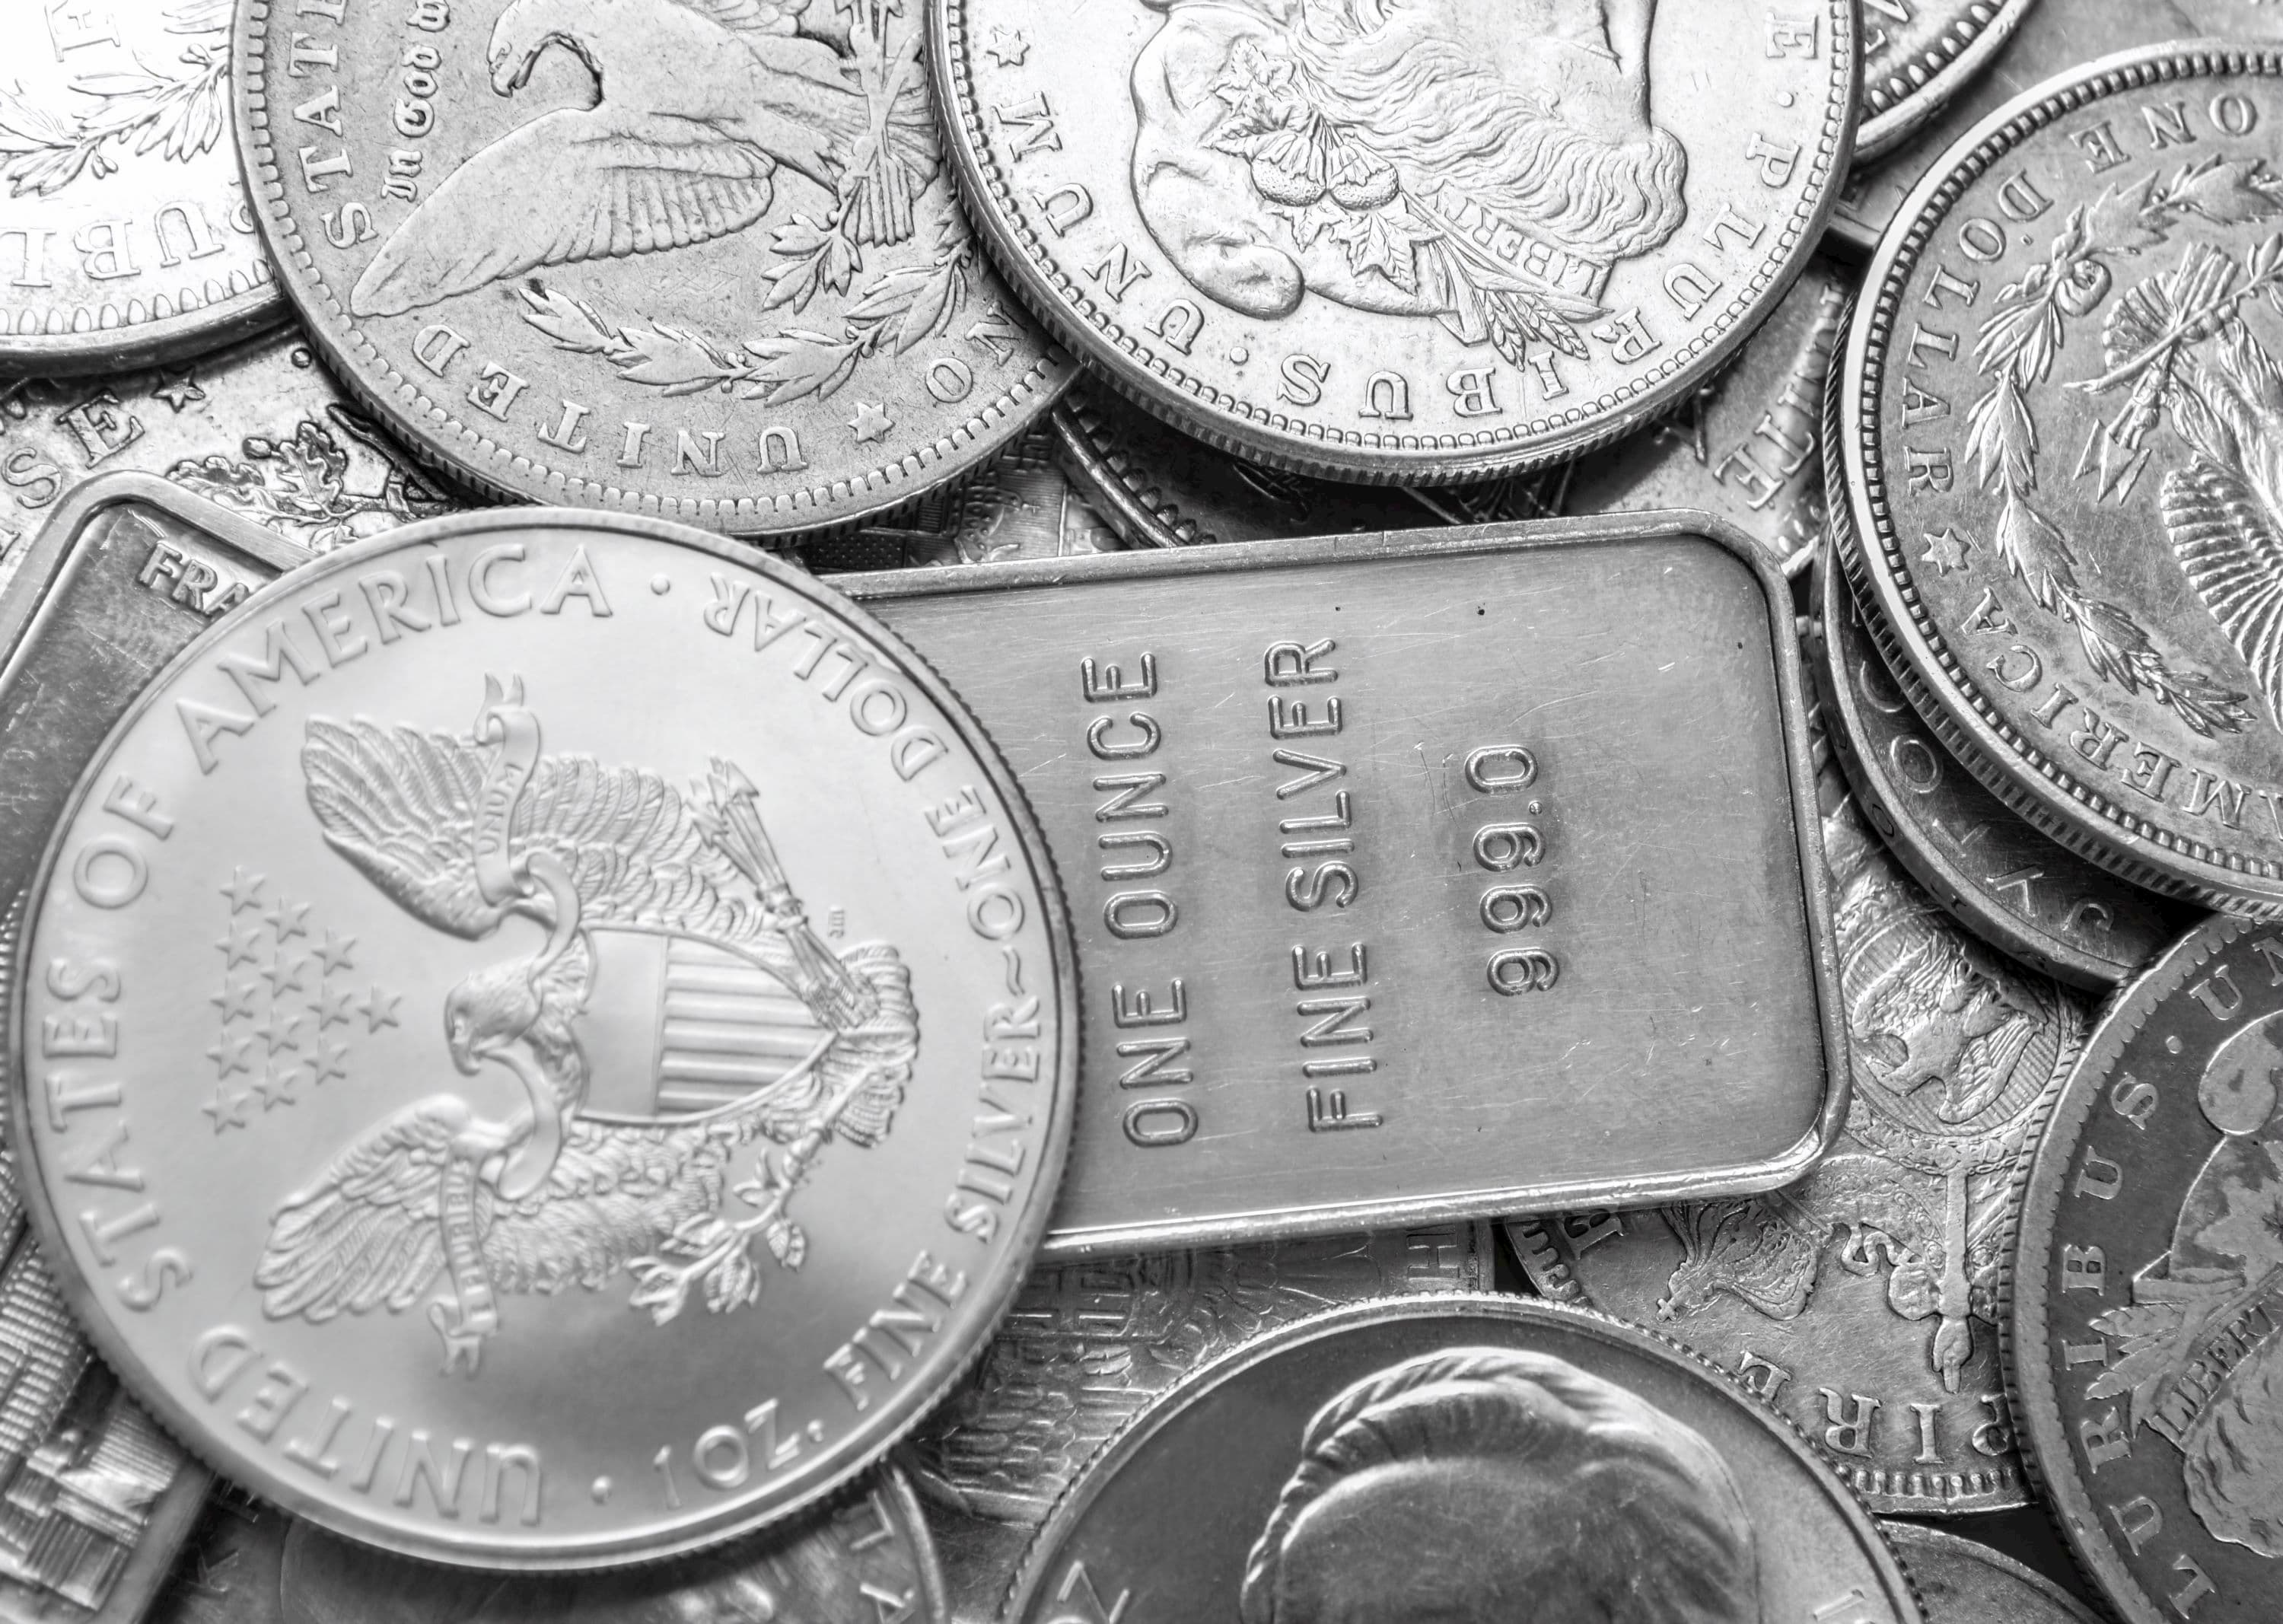 Silver bars and silver coins